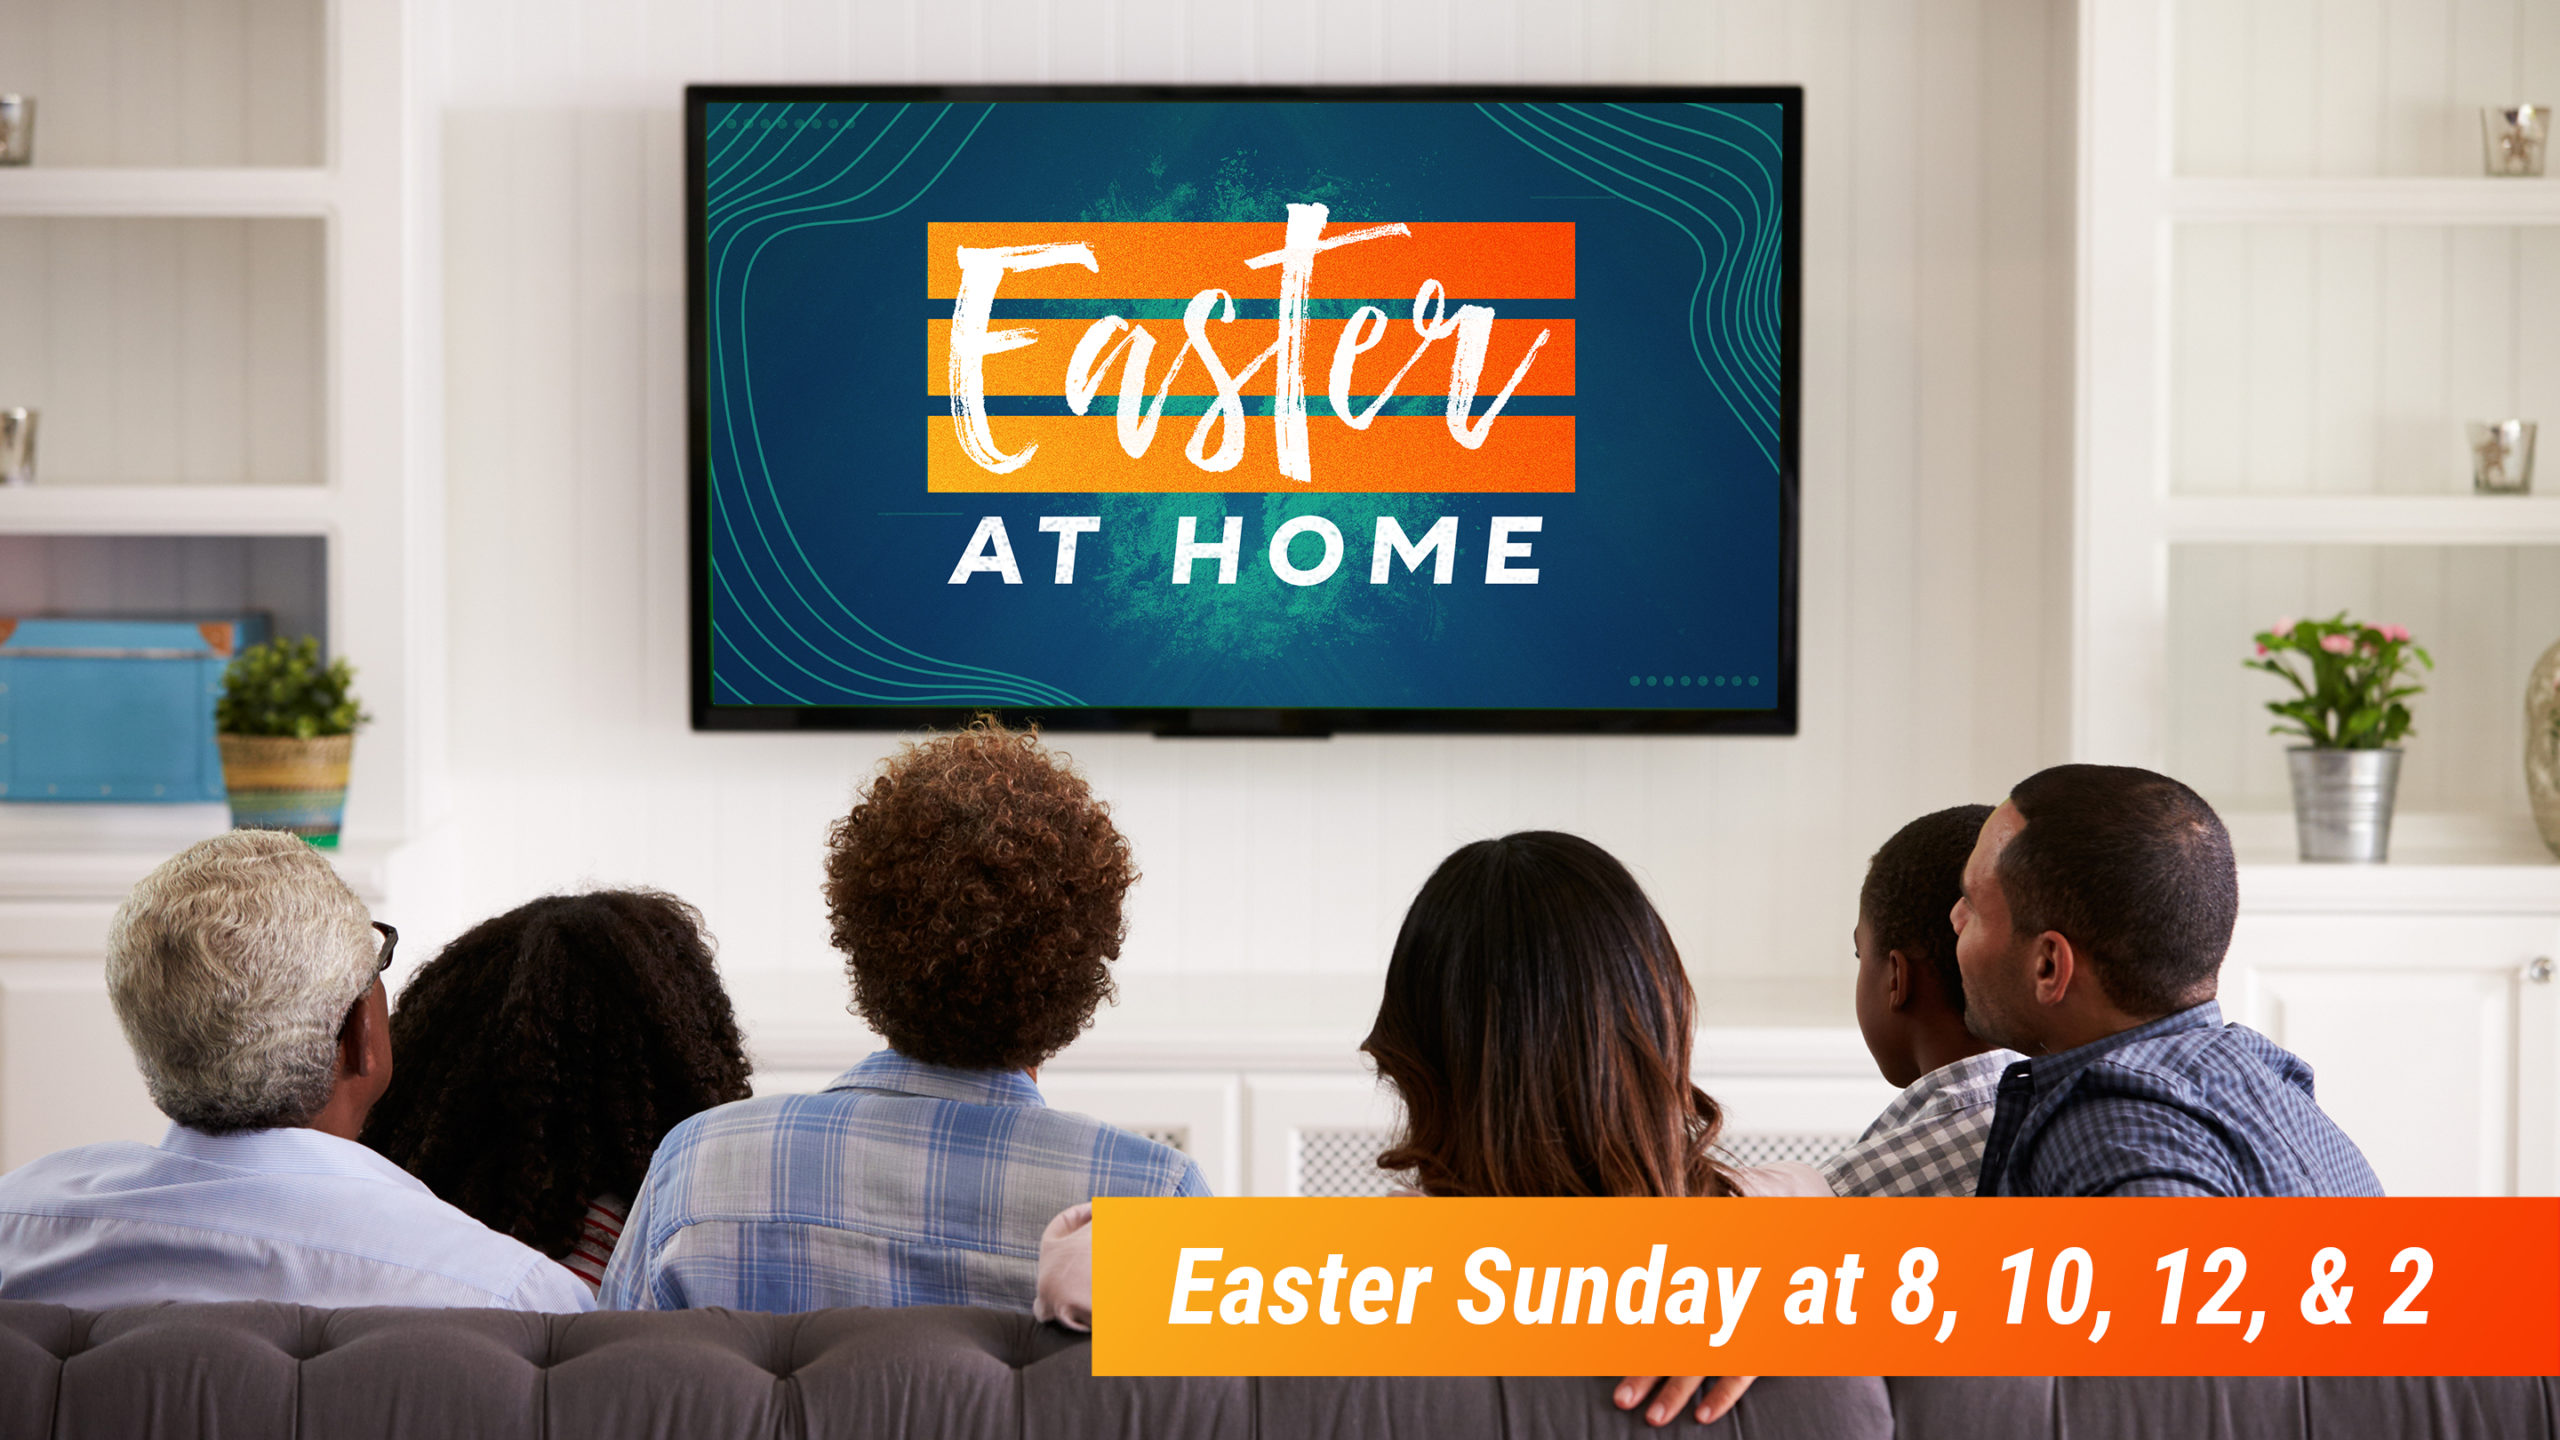 Image: Easter at Home with Times